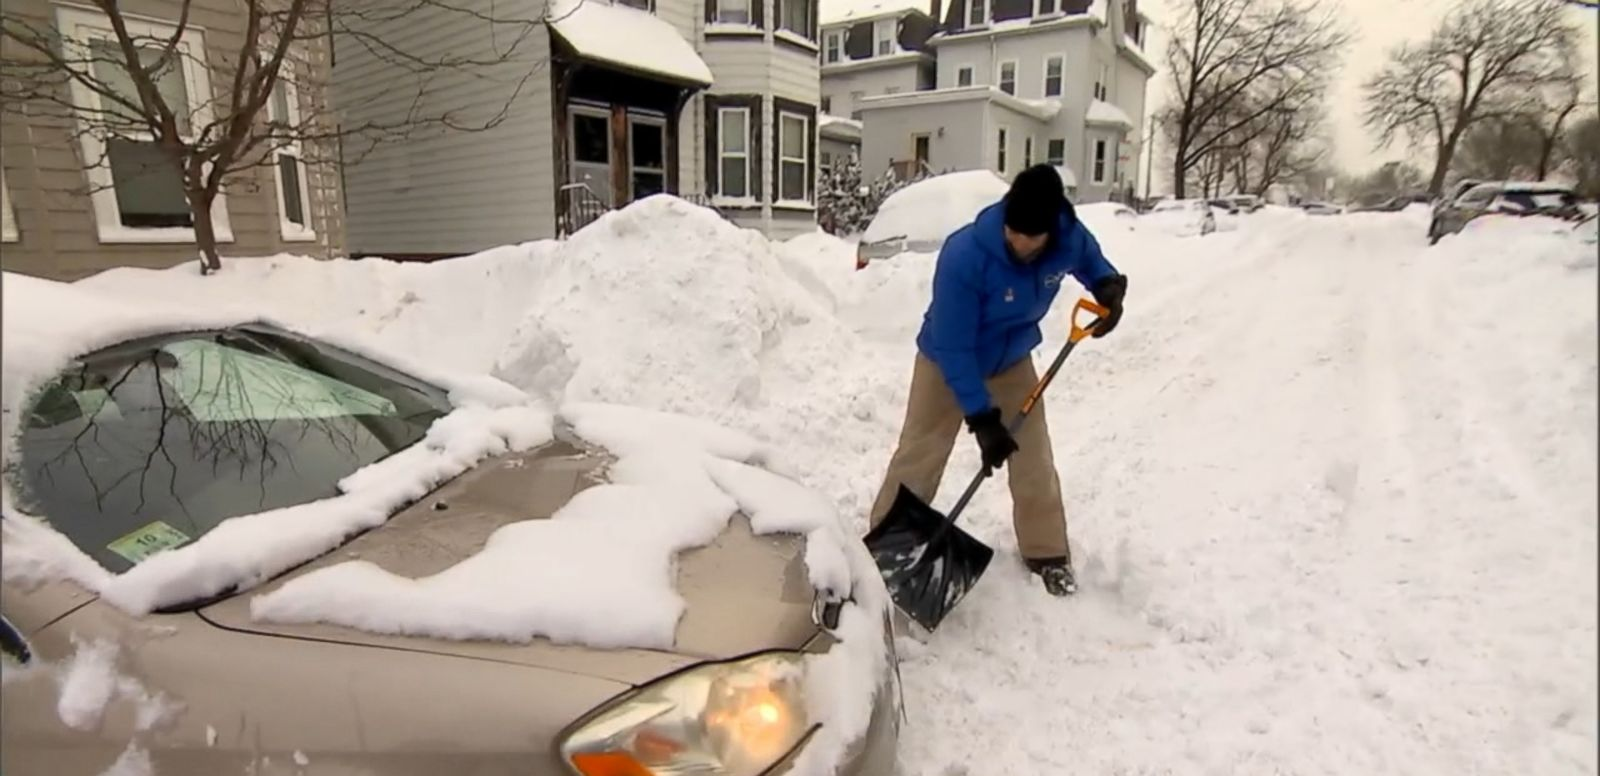 VIDEO:ABC News' Rob Marciano helped a woman free her car from a snow bank in South Boston.